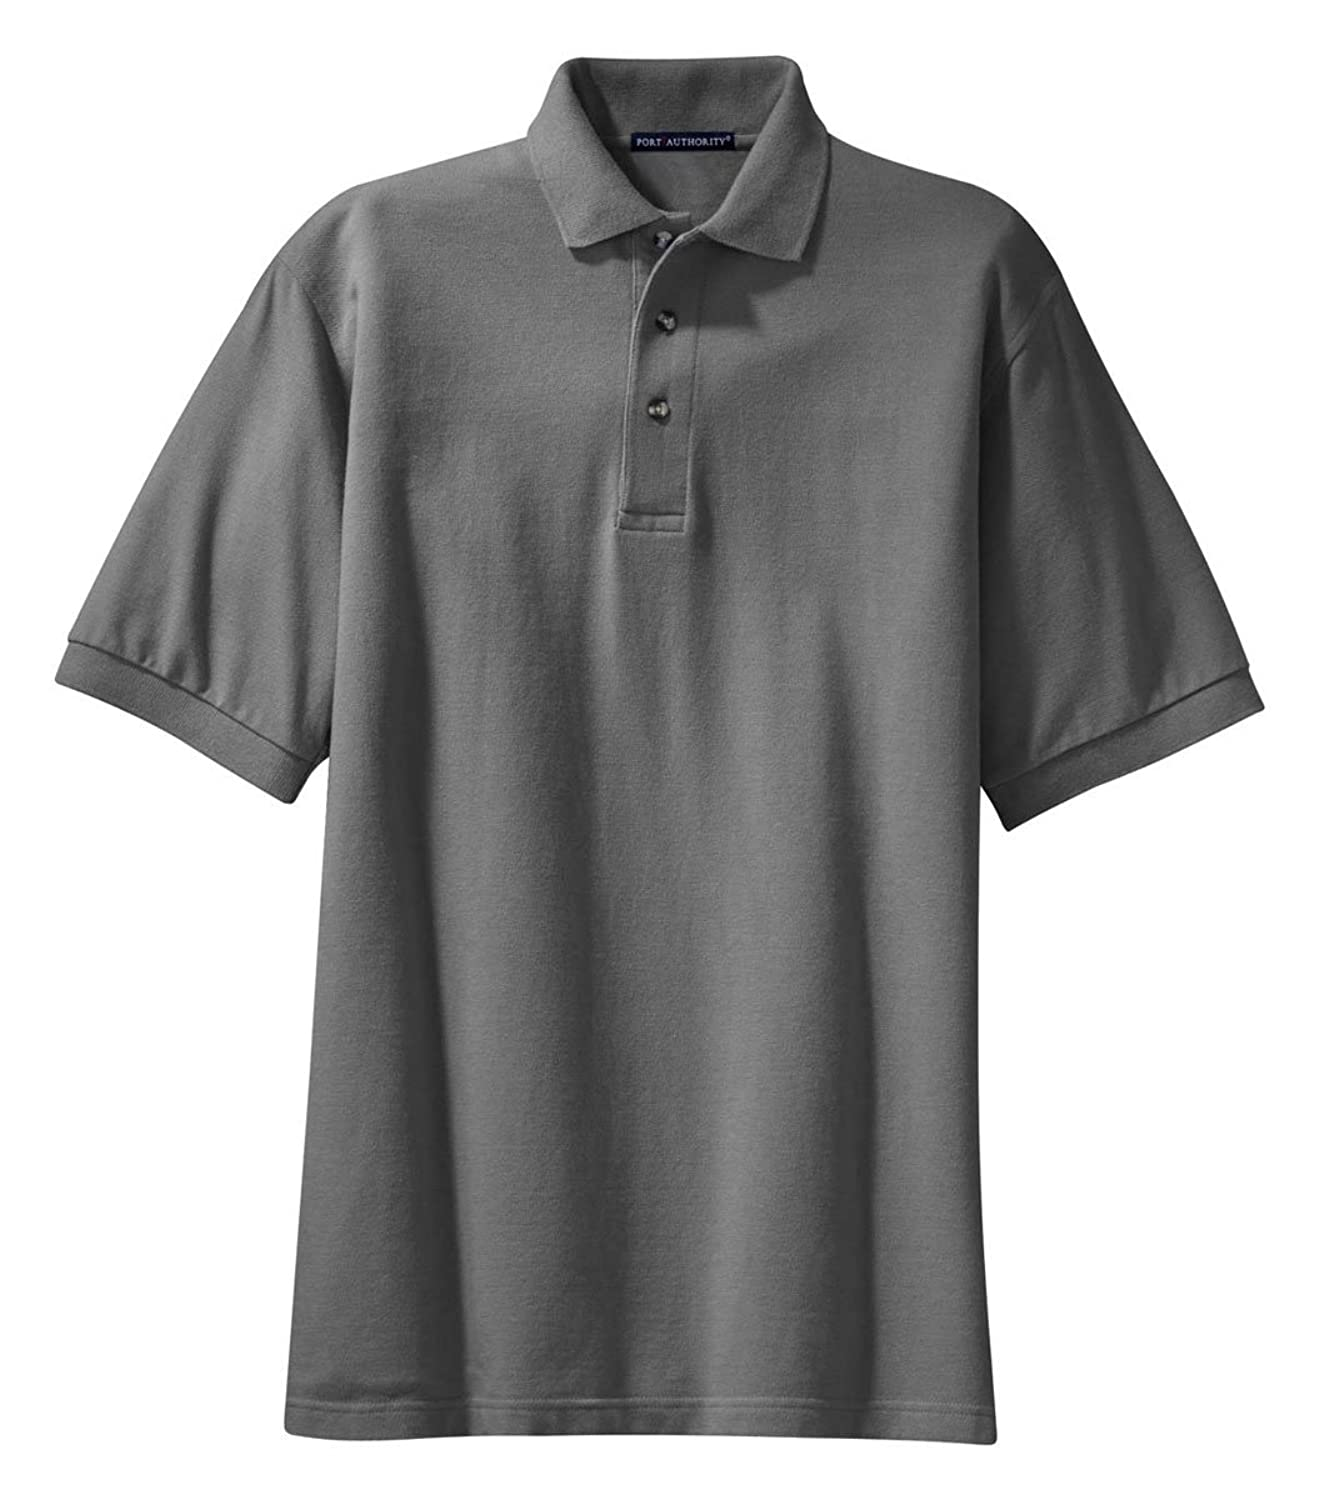 Port Authority Pique Knit Sport Shirt, Steel Grey